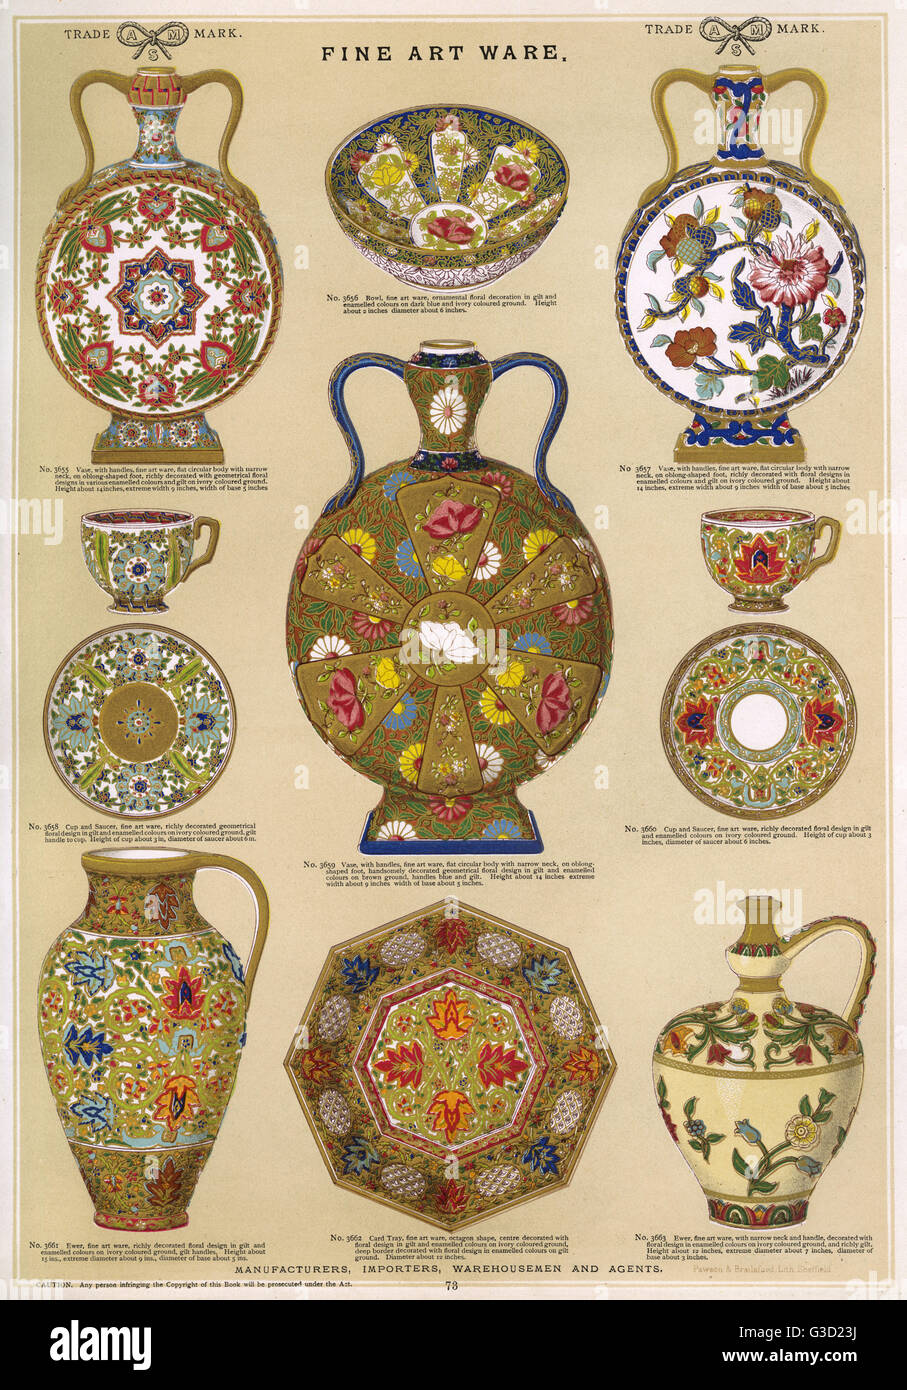 Fine Art Ware Plate 73 showing ornately decorated plates jugs pots vases saucers cups and a bowl. Date circa 1880s  sc 1 st  Alamy & Fine Art Ware Plate 73 showing ornately decorated plates jugs ...